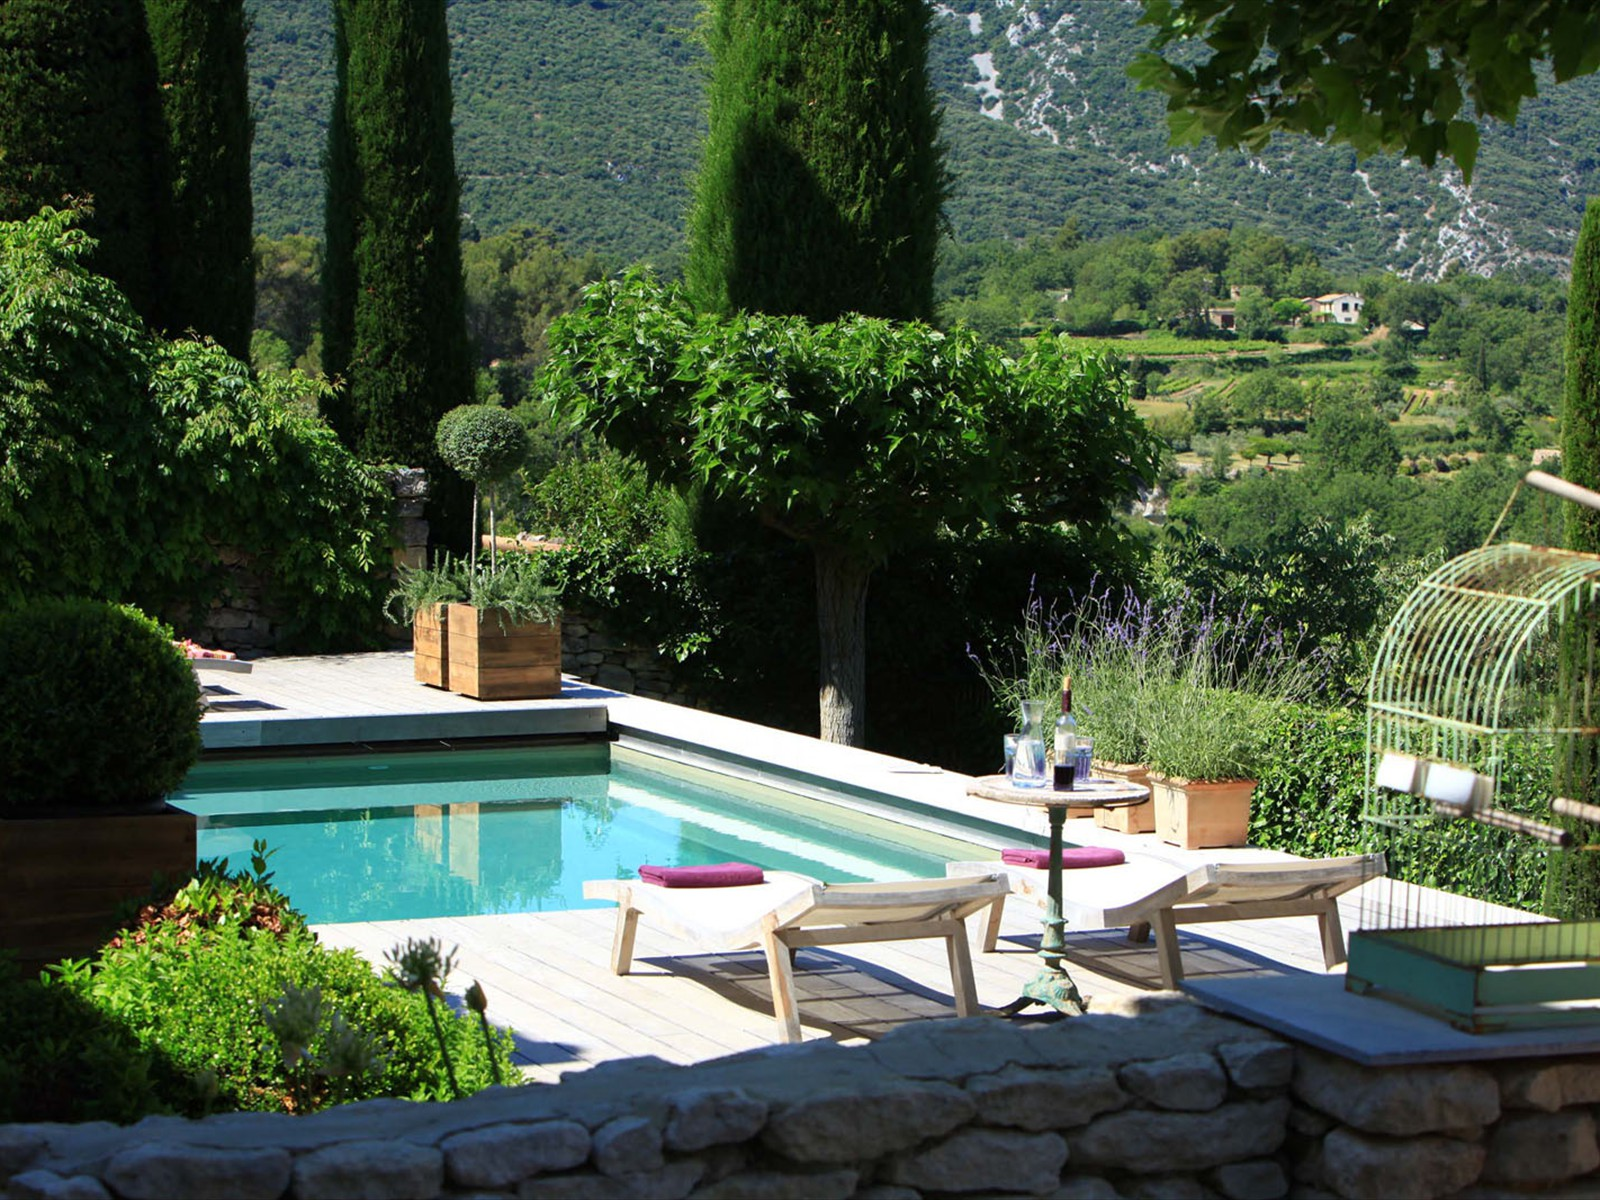 exclusive_rentals_provence_vacation_luxury_homes_holiday_rentals_mont_ventoux_luberon_19